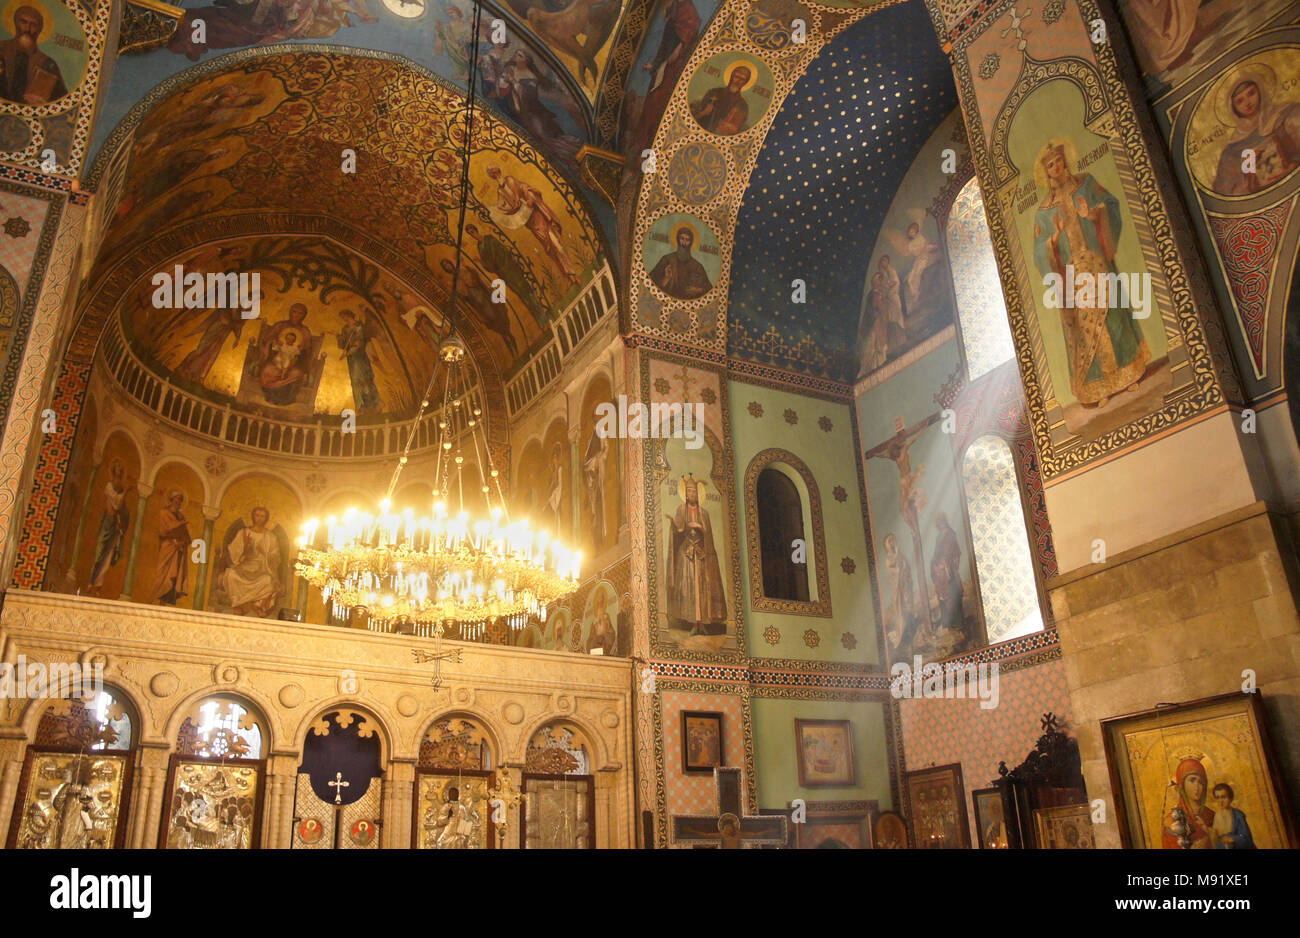 Murals and frescos decorate the Interior of Sioni Cathedral (Georgian Orthodox) as rays of sunlight enter through a side window, Tbilisi, Georgia Stock Photo